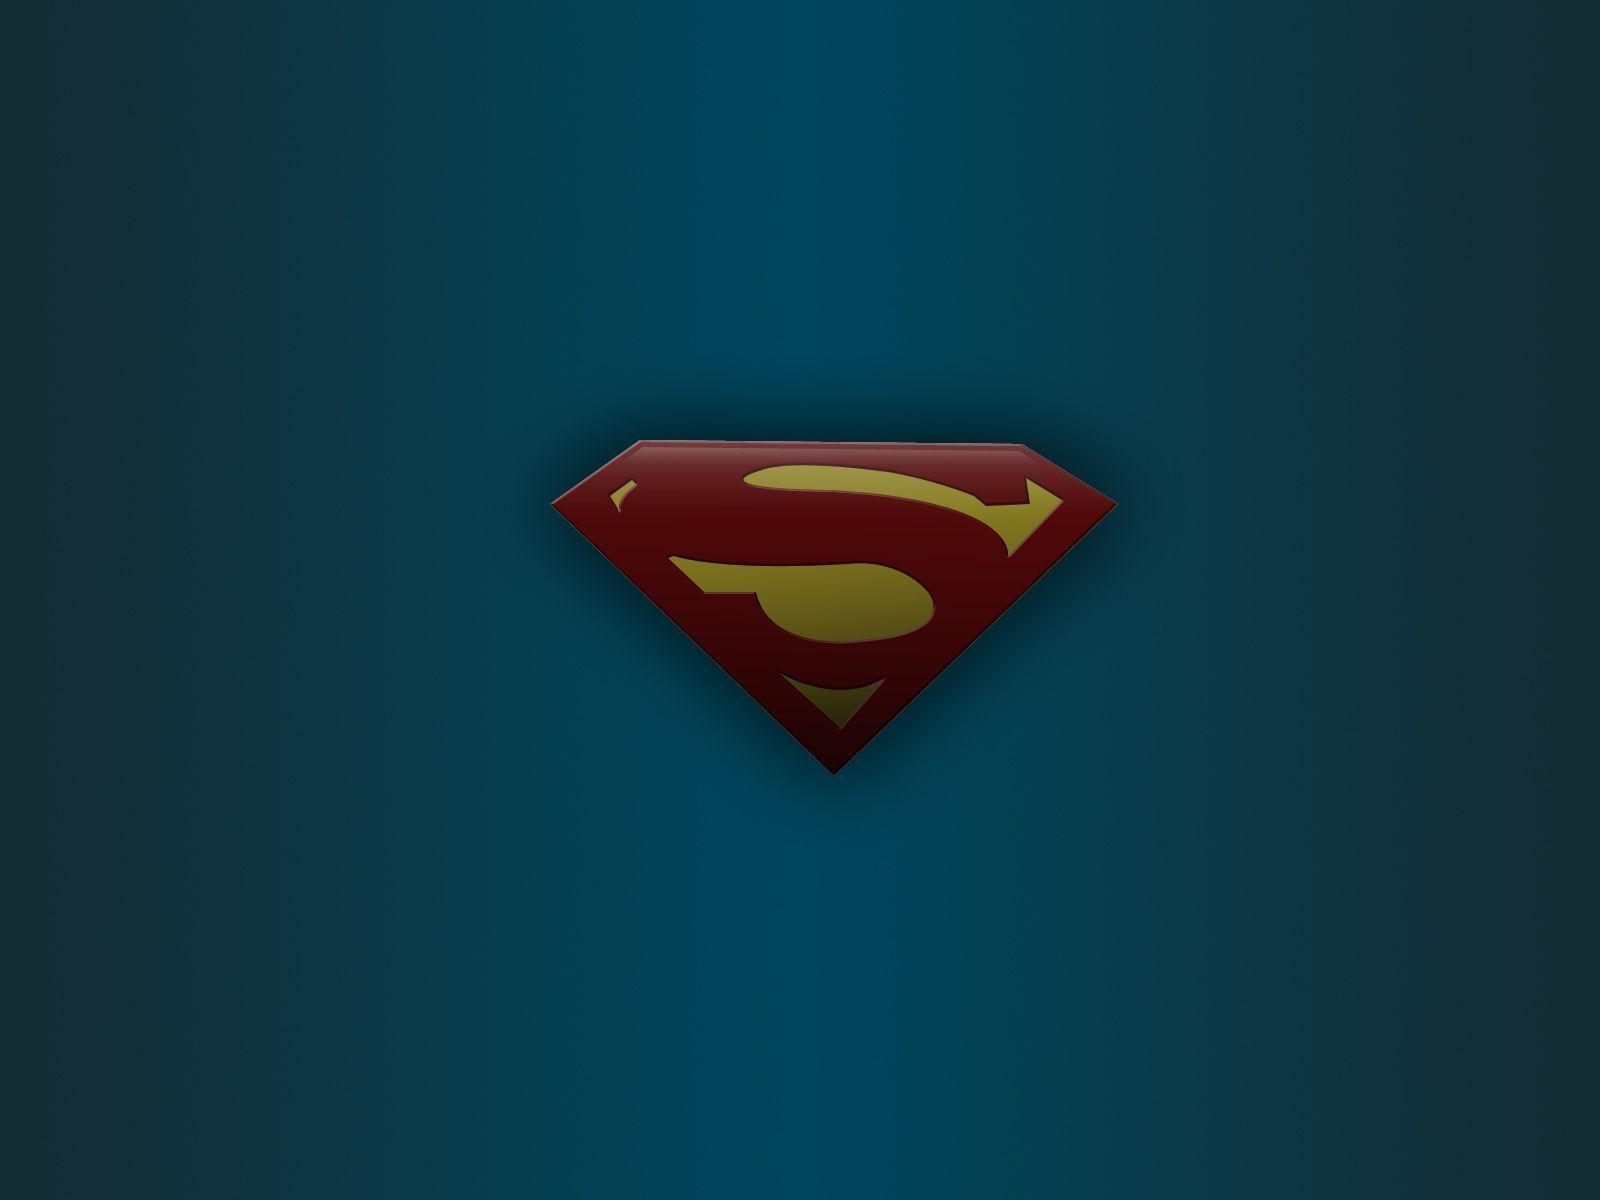 Wallpapers For > Superman Wallpaper Iphone 4